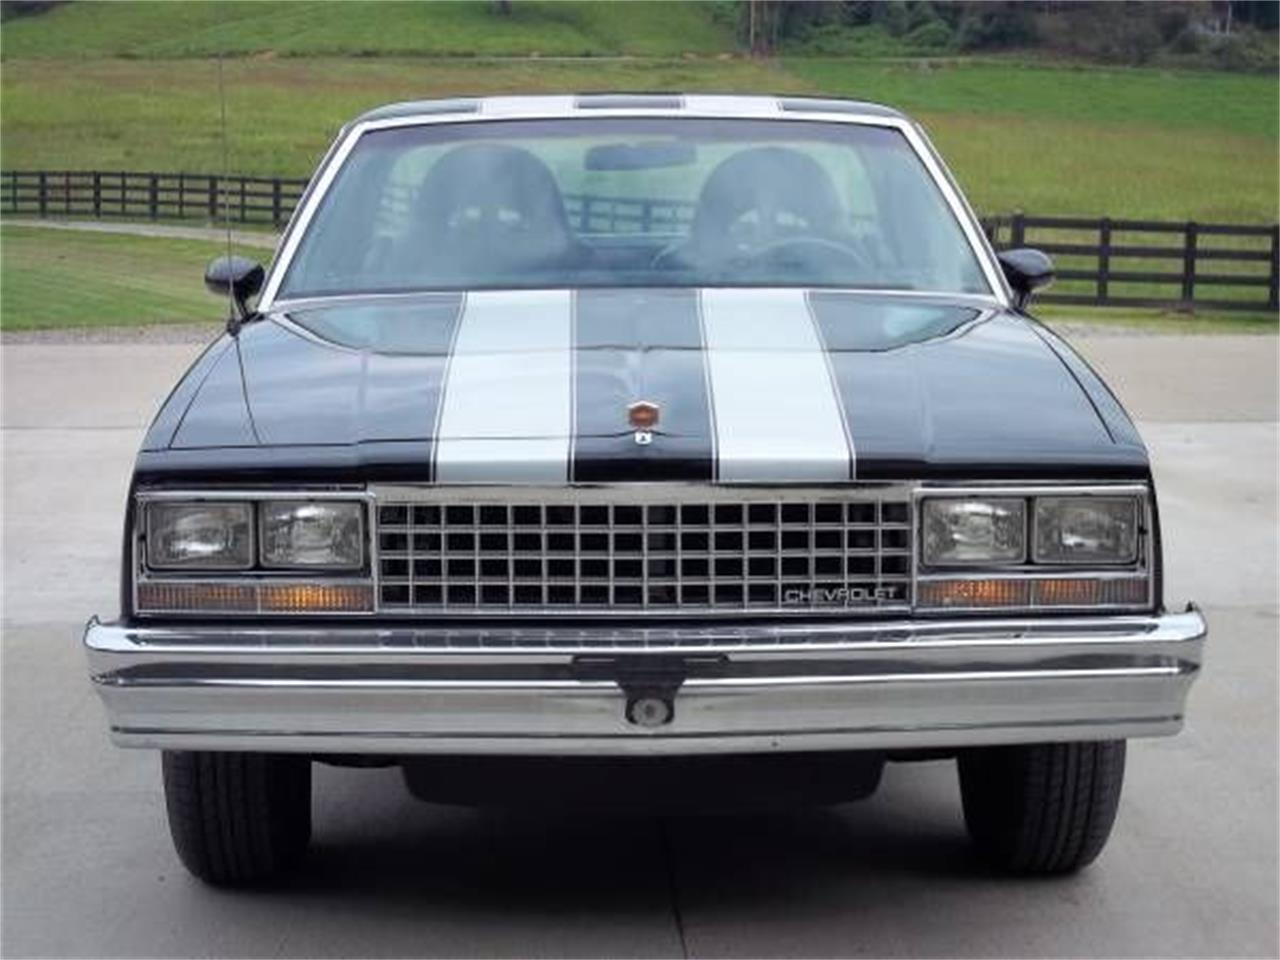 1985 Chevrolet El Camino for sale in Cadillac, MI – photo 8